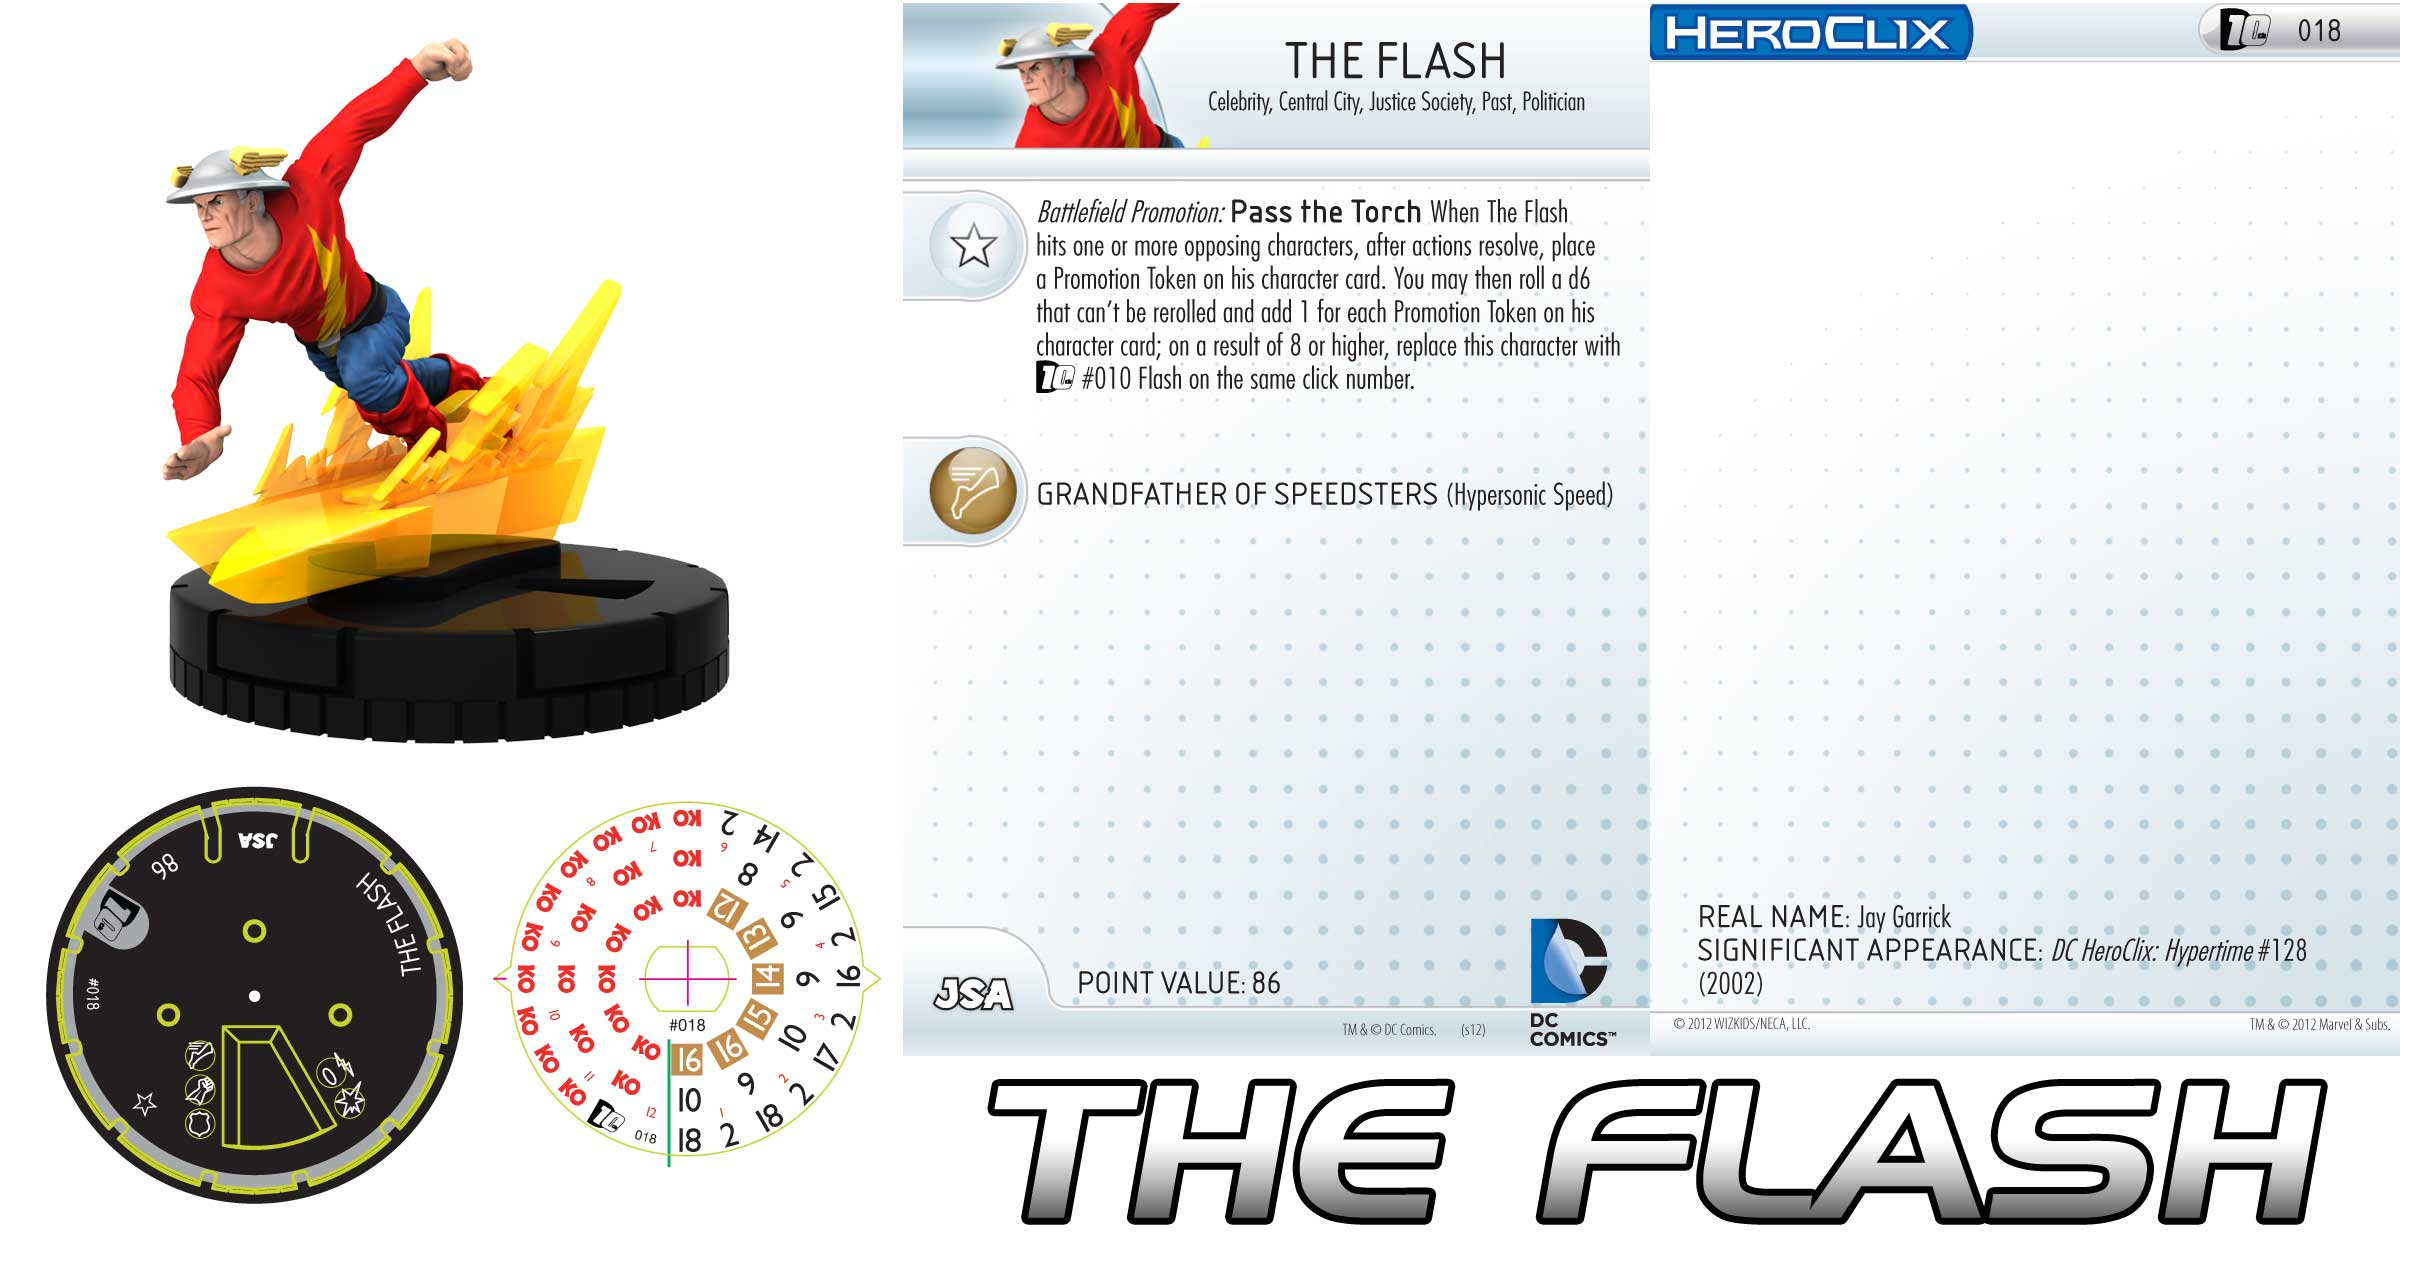 dc comics 10th anniversary flash is up - heroclix realms